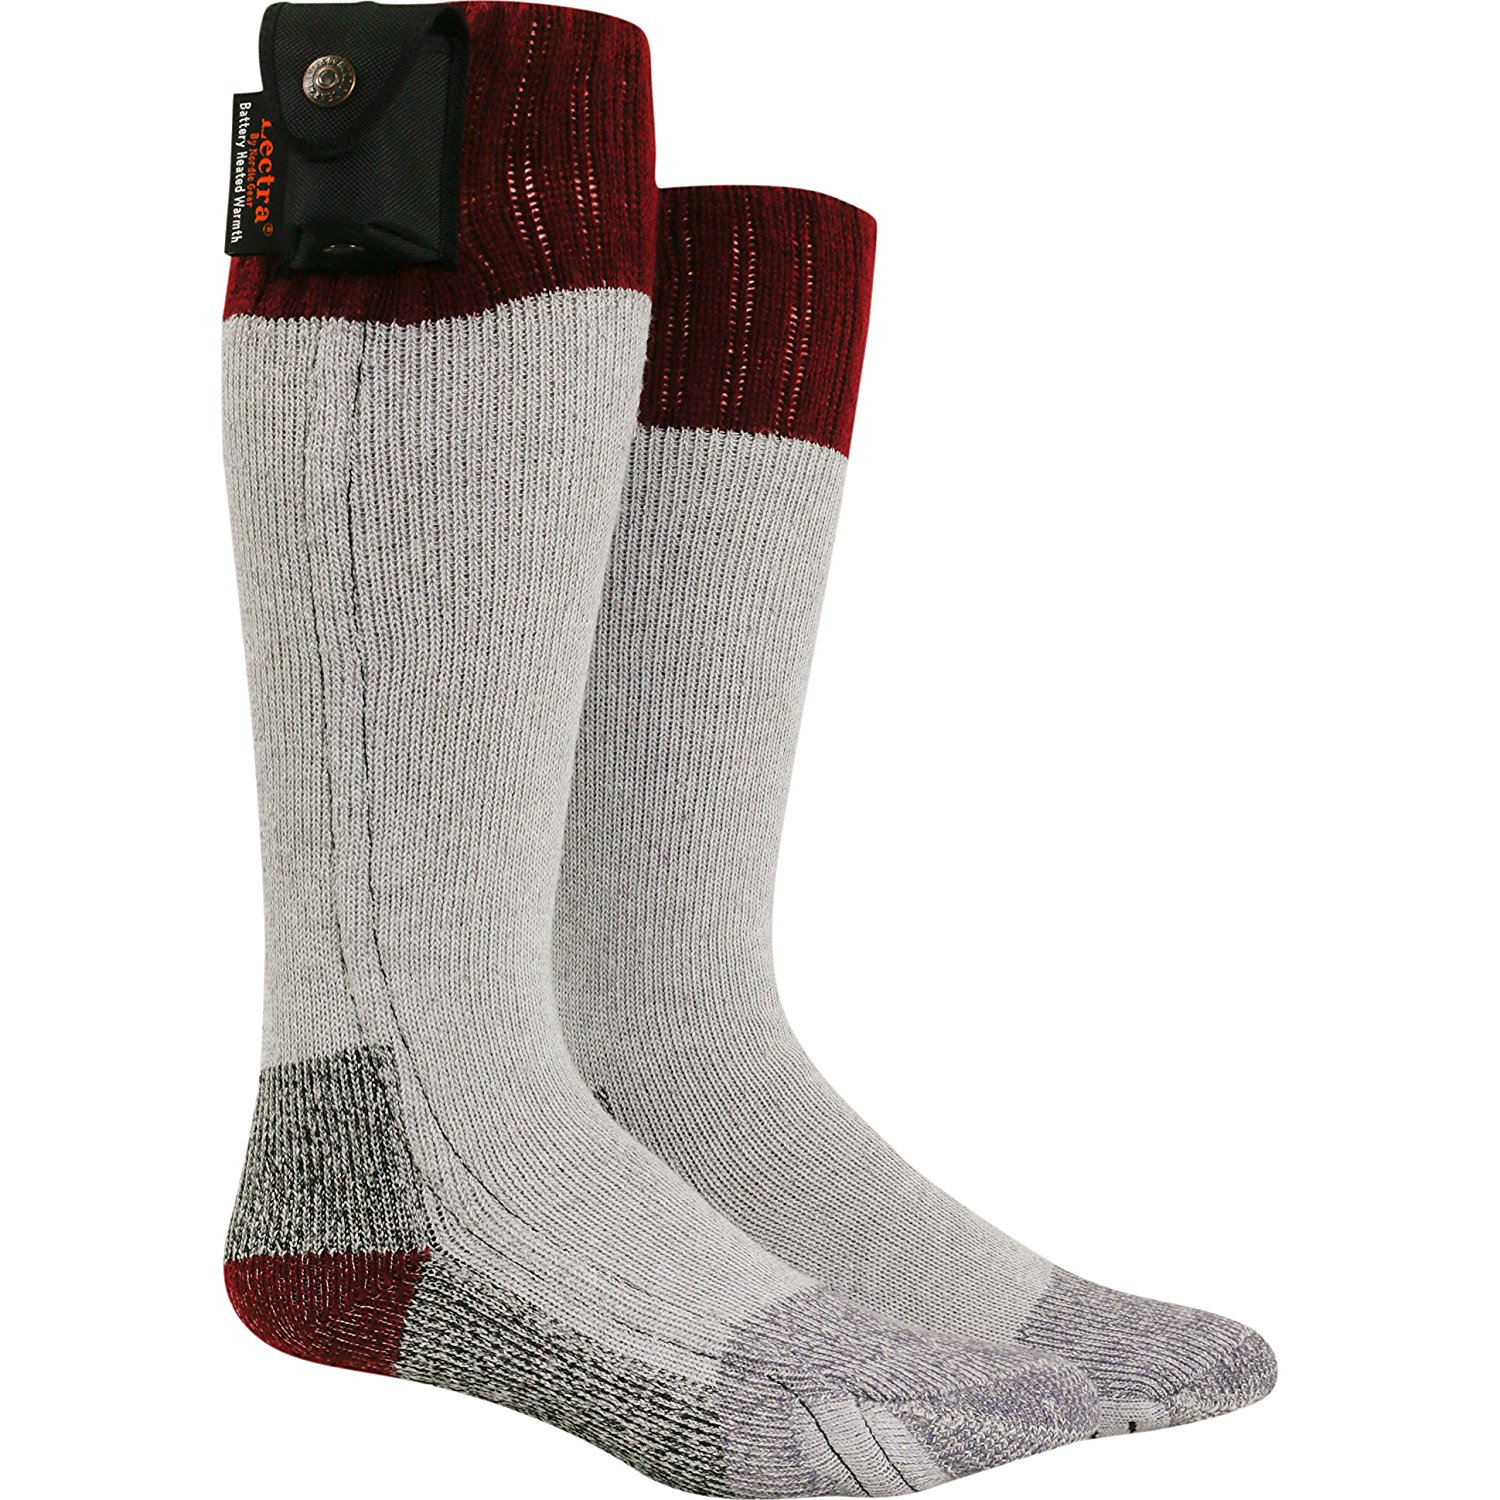 eb924772e4 Get Quotations · Turtle Fur Lectra Sox Hiker Boot Socks, Electric Battery  Heated Socks